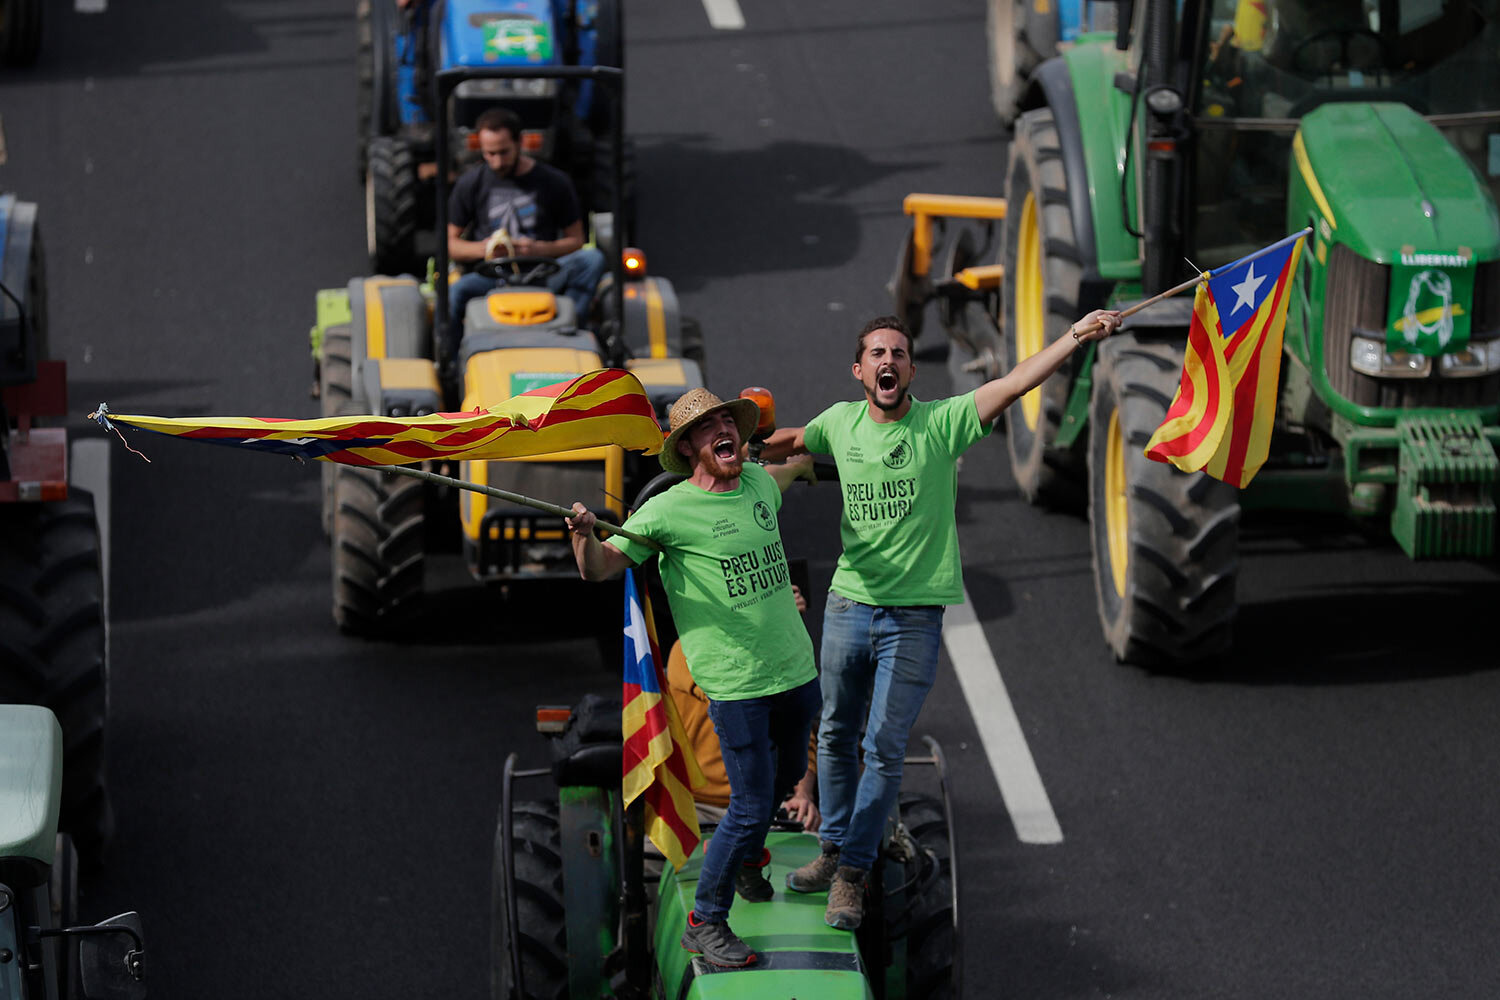 Protesters ride on tractors as they enter the city on the fifth day of protests over the conviction of a dozen Catalan independence leaders in Barcelona, Spain, Friday, Oct. 18, 2019.(AP Photo/Manu Fernandez)